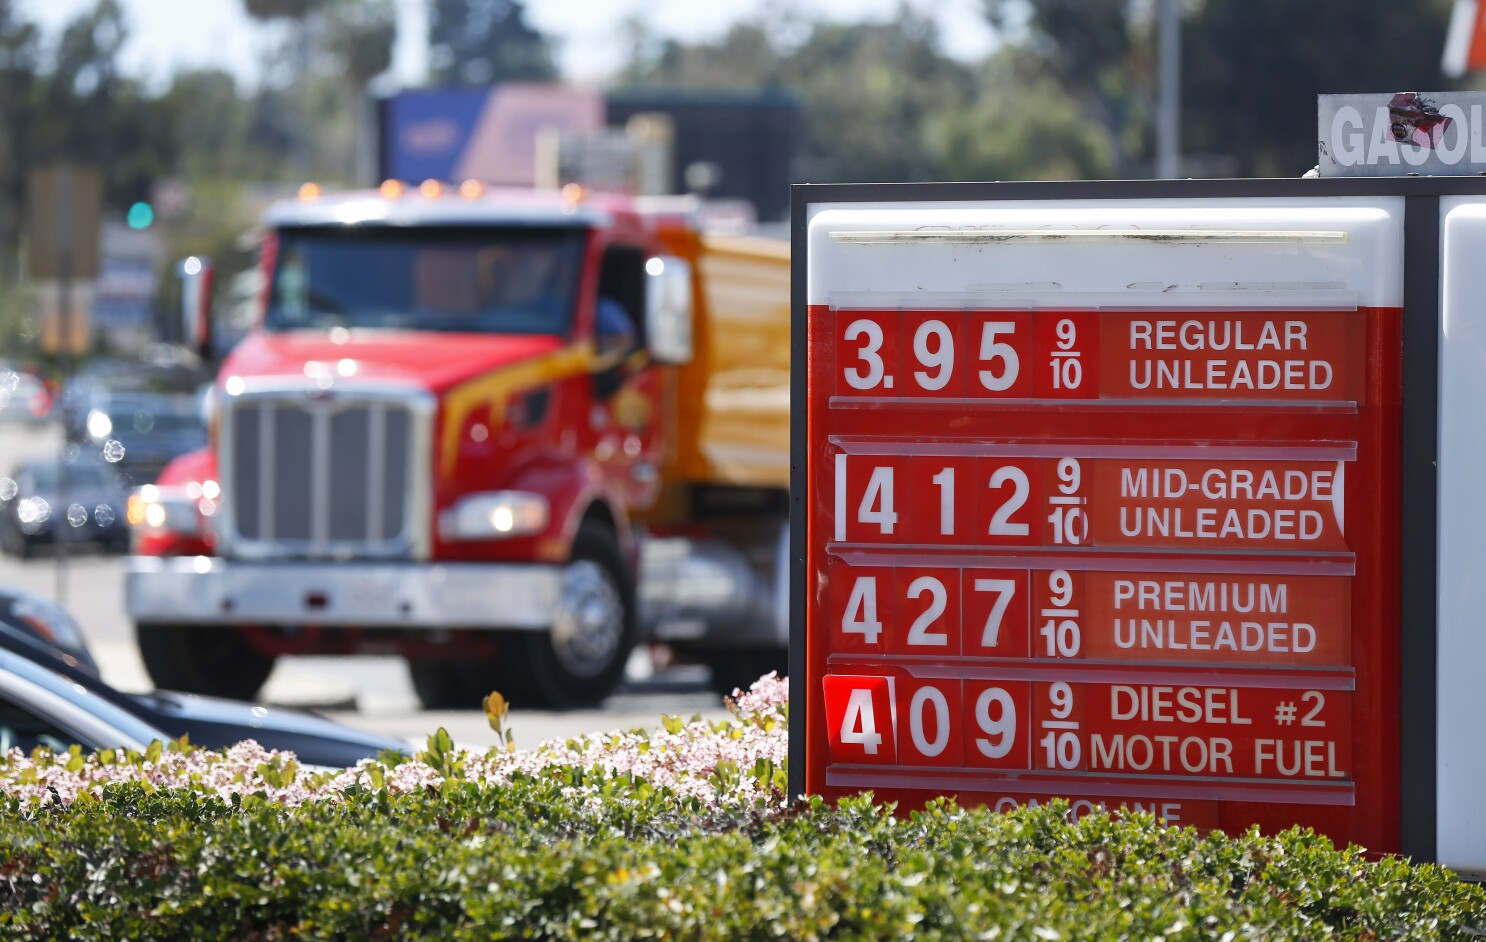 Gas Prices San Diego >> Gasoline Prices In San Diego Spike To Near 4 A Gallon The San